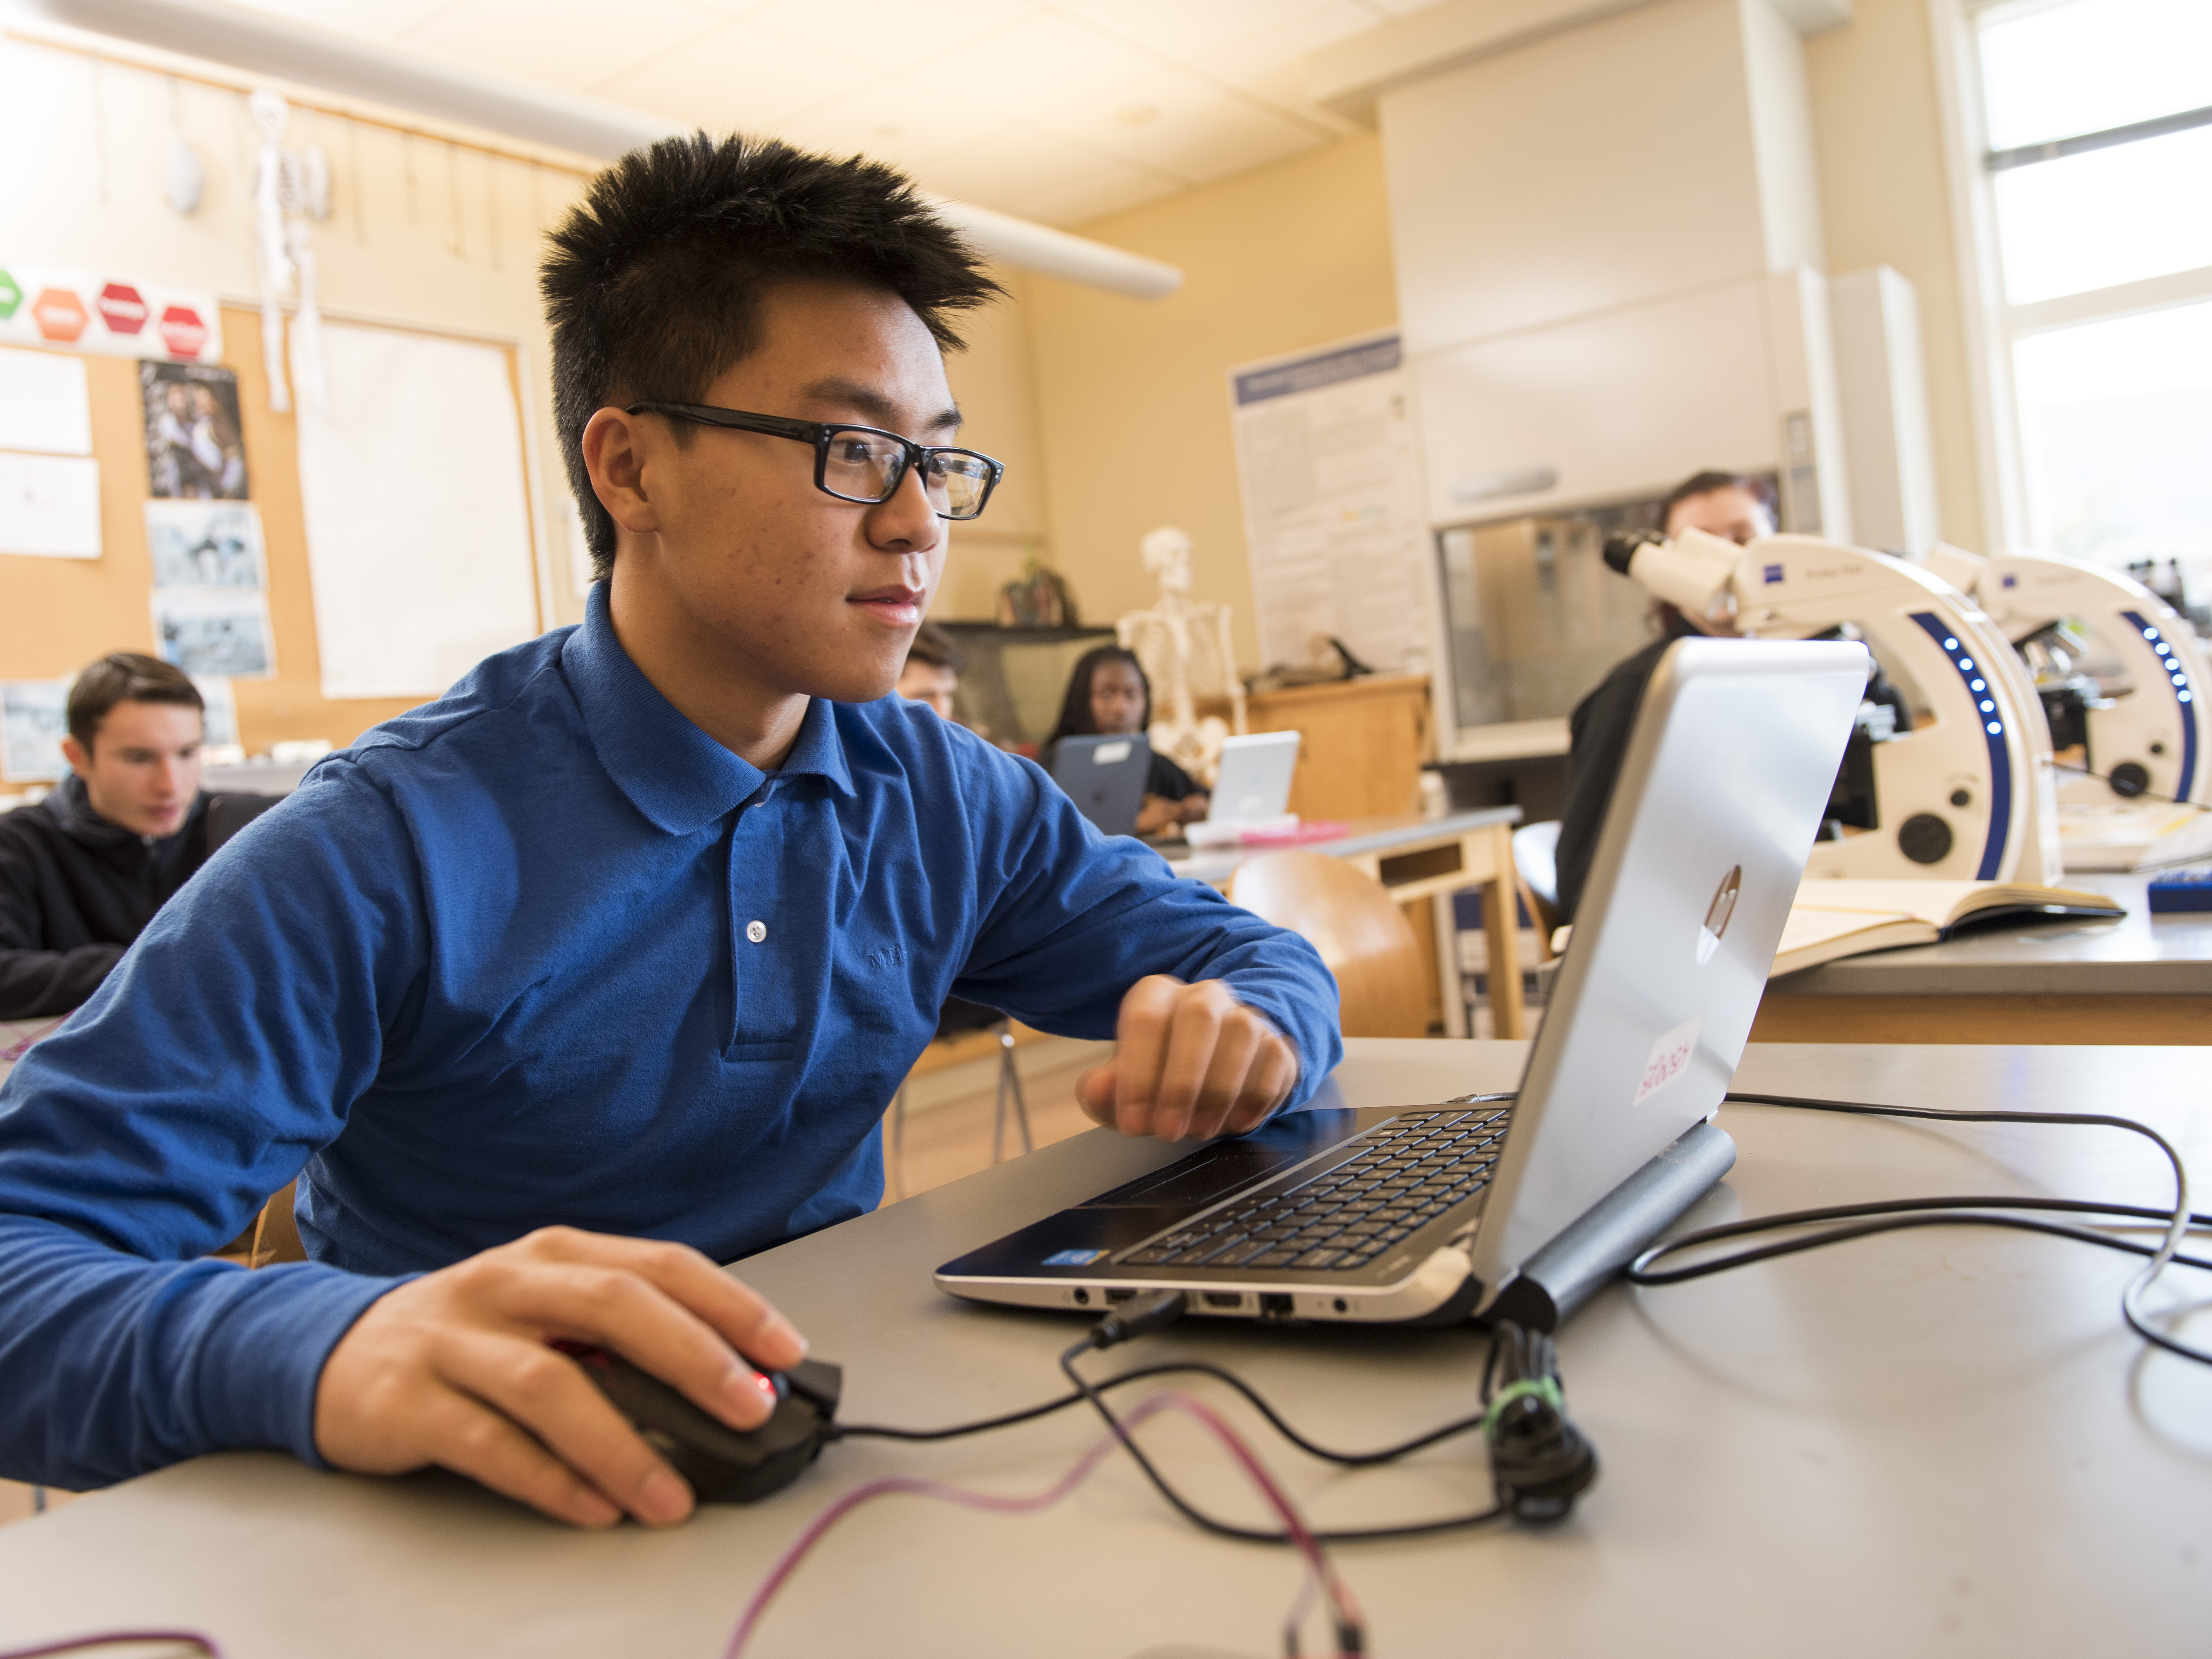 MHS is committed to helping students prepare for life after graduation through its college and career readiness program.